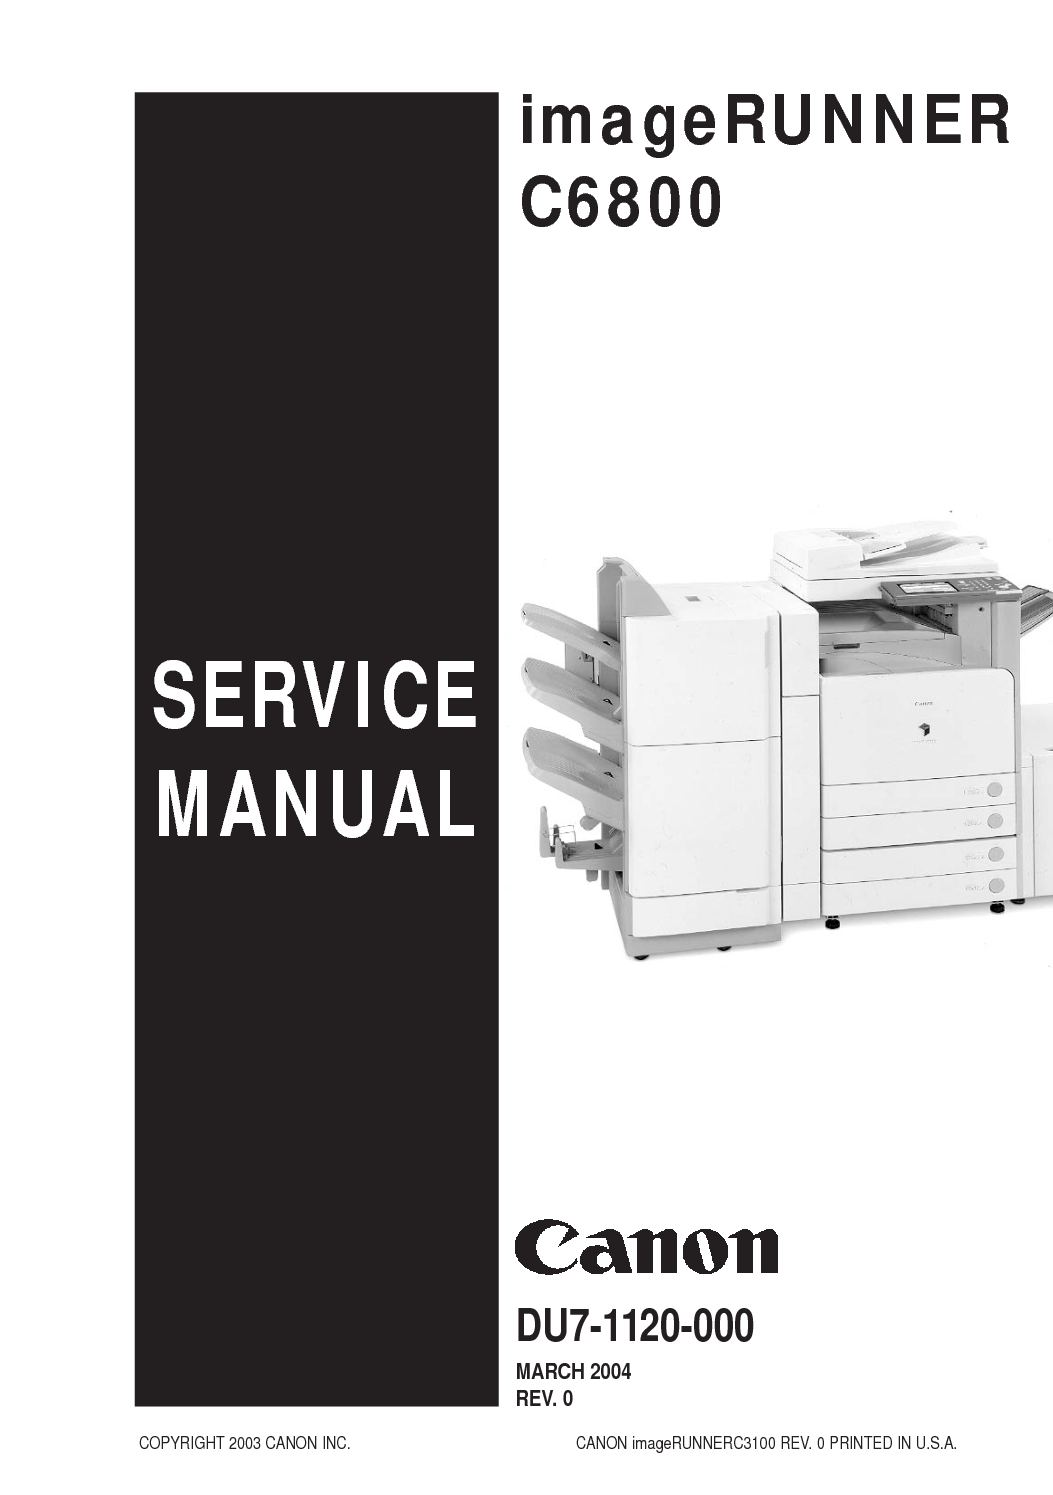 imageRUNNER C6800 Parts and Service Manual